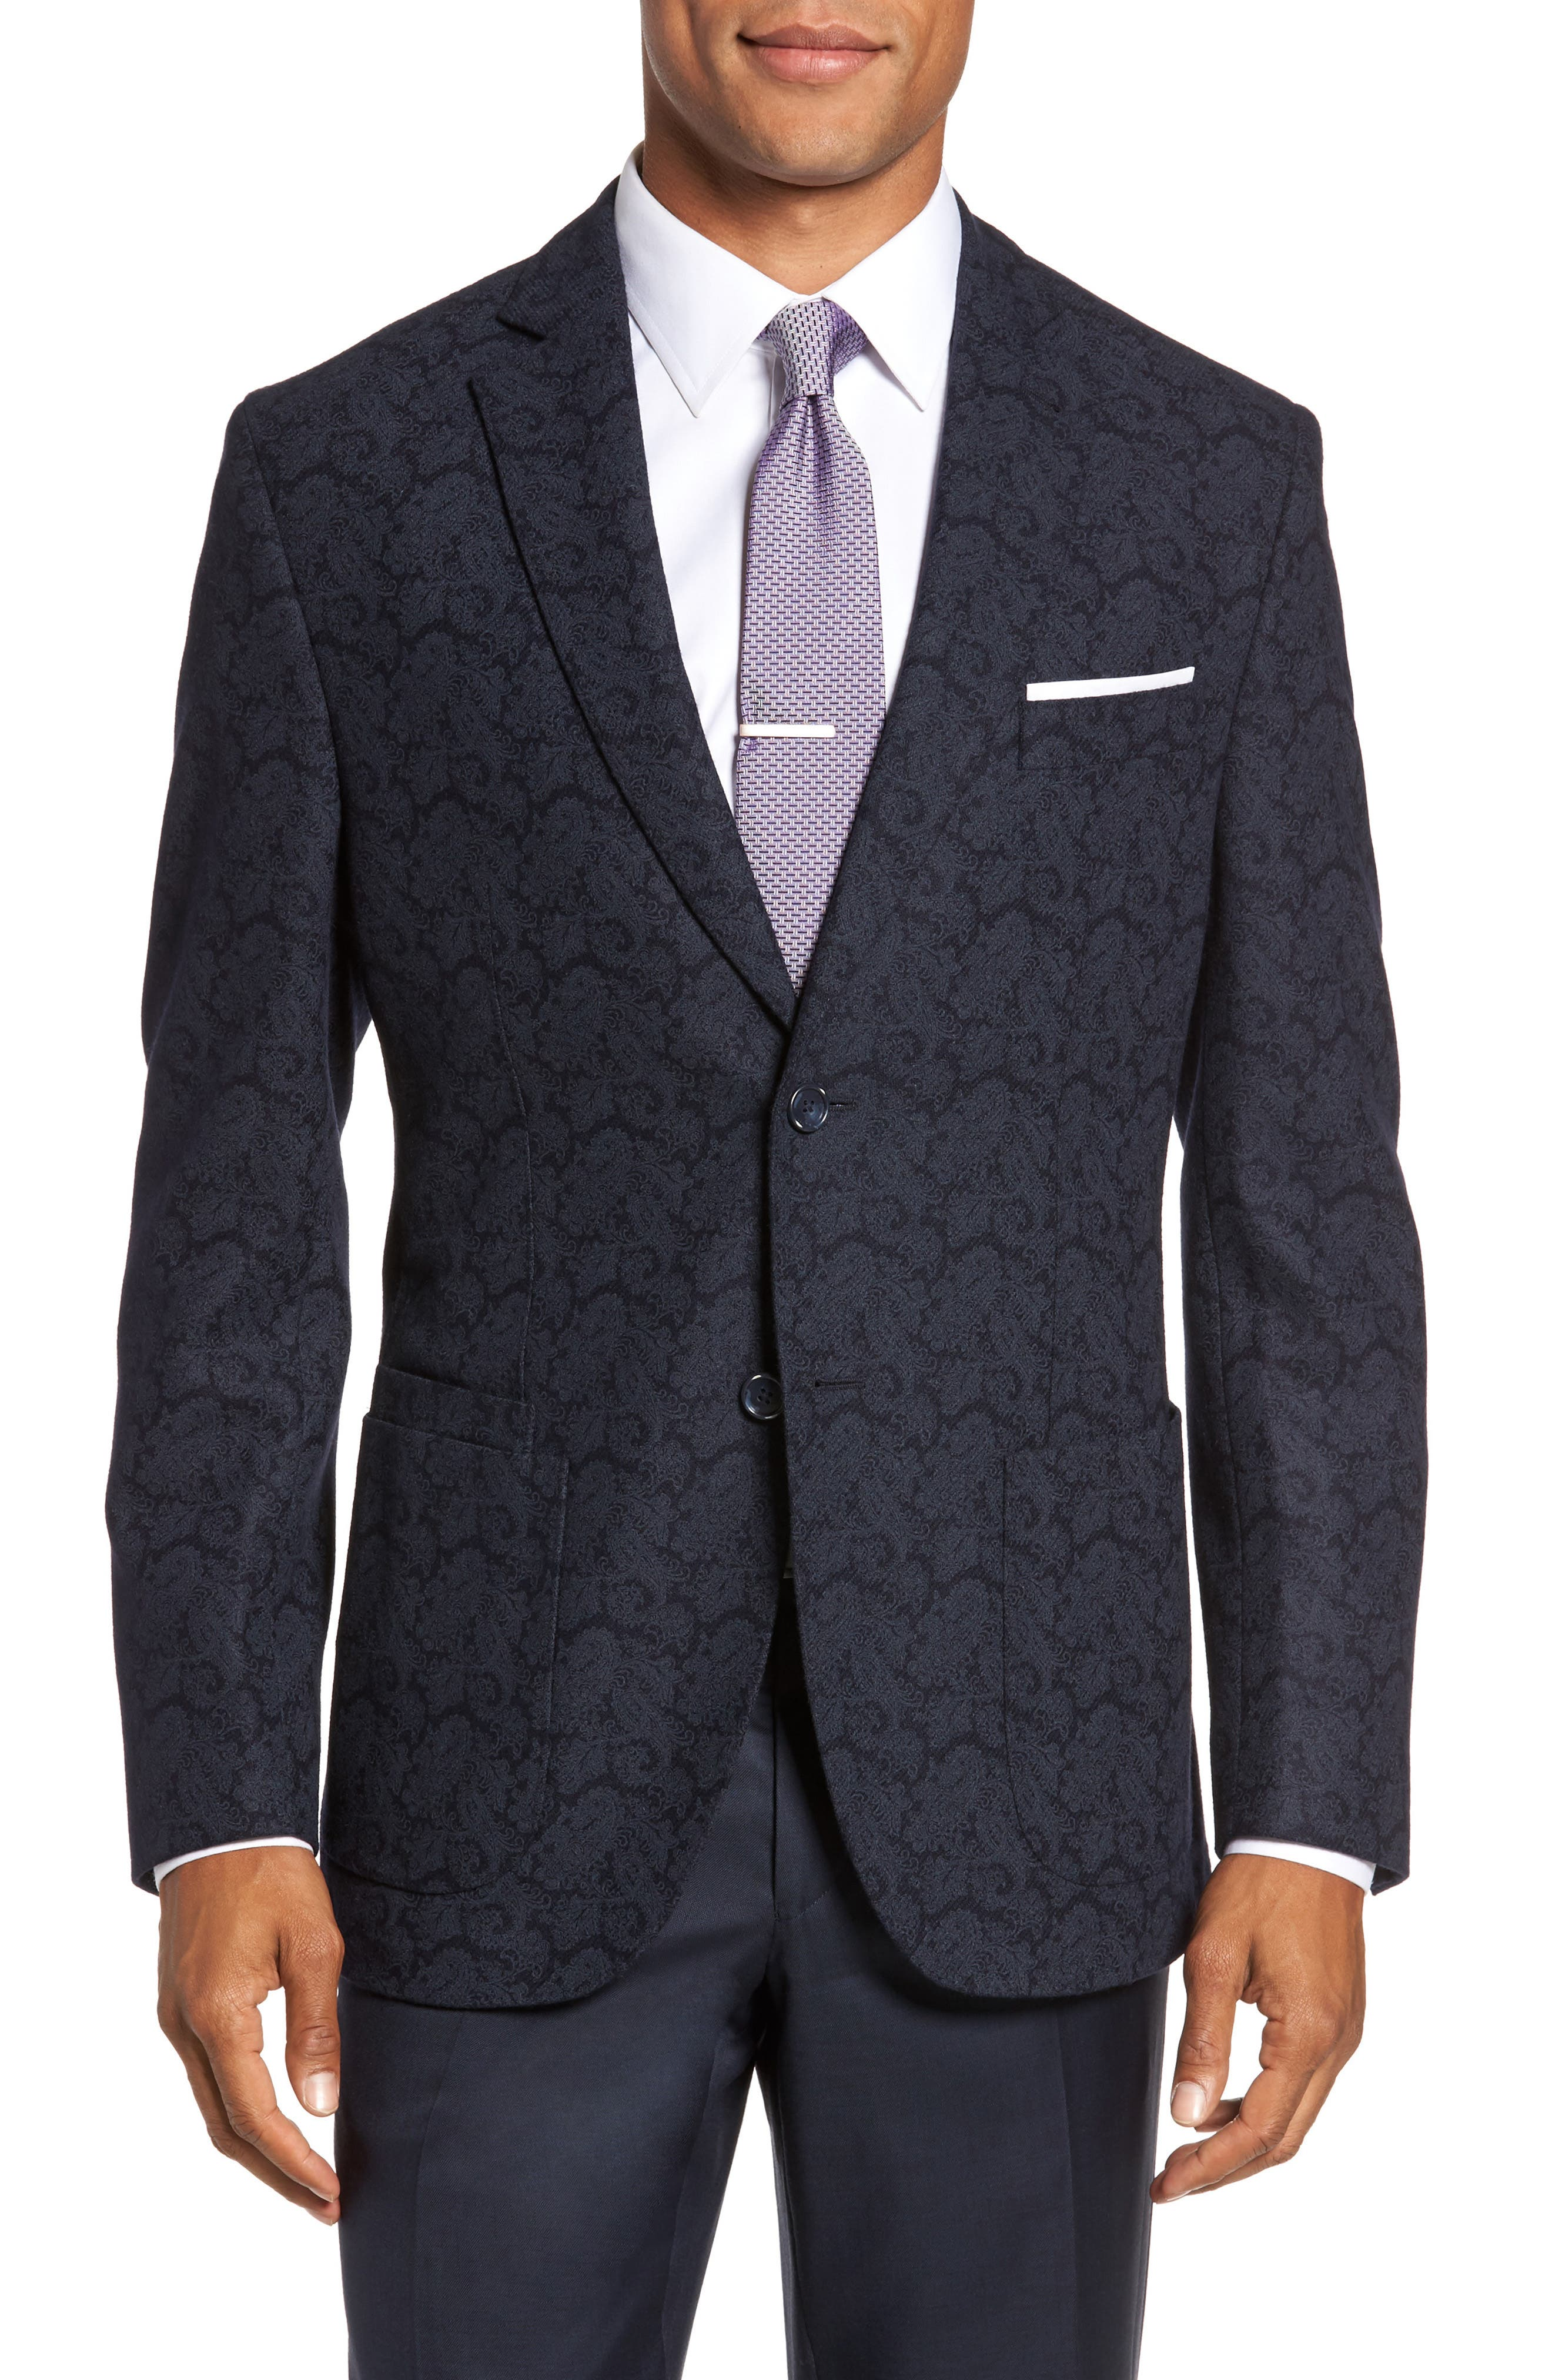 Alternate Image 1 Selected - JKT New York Trim Fit Paisley Wool Blend Sport Coat